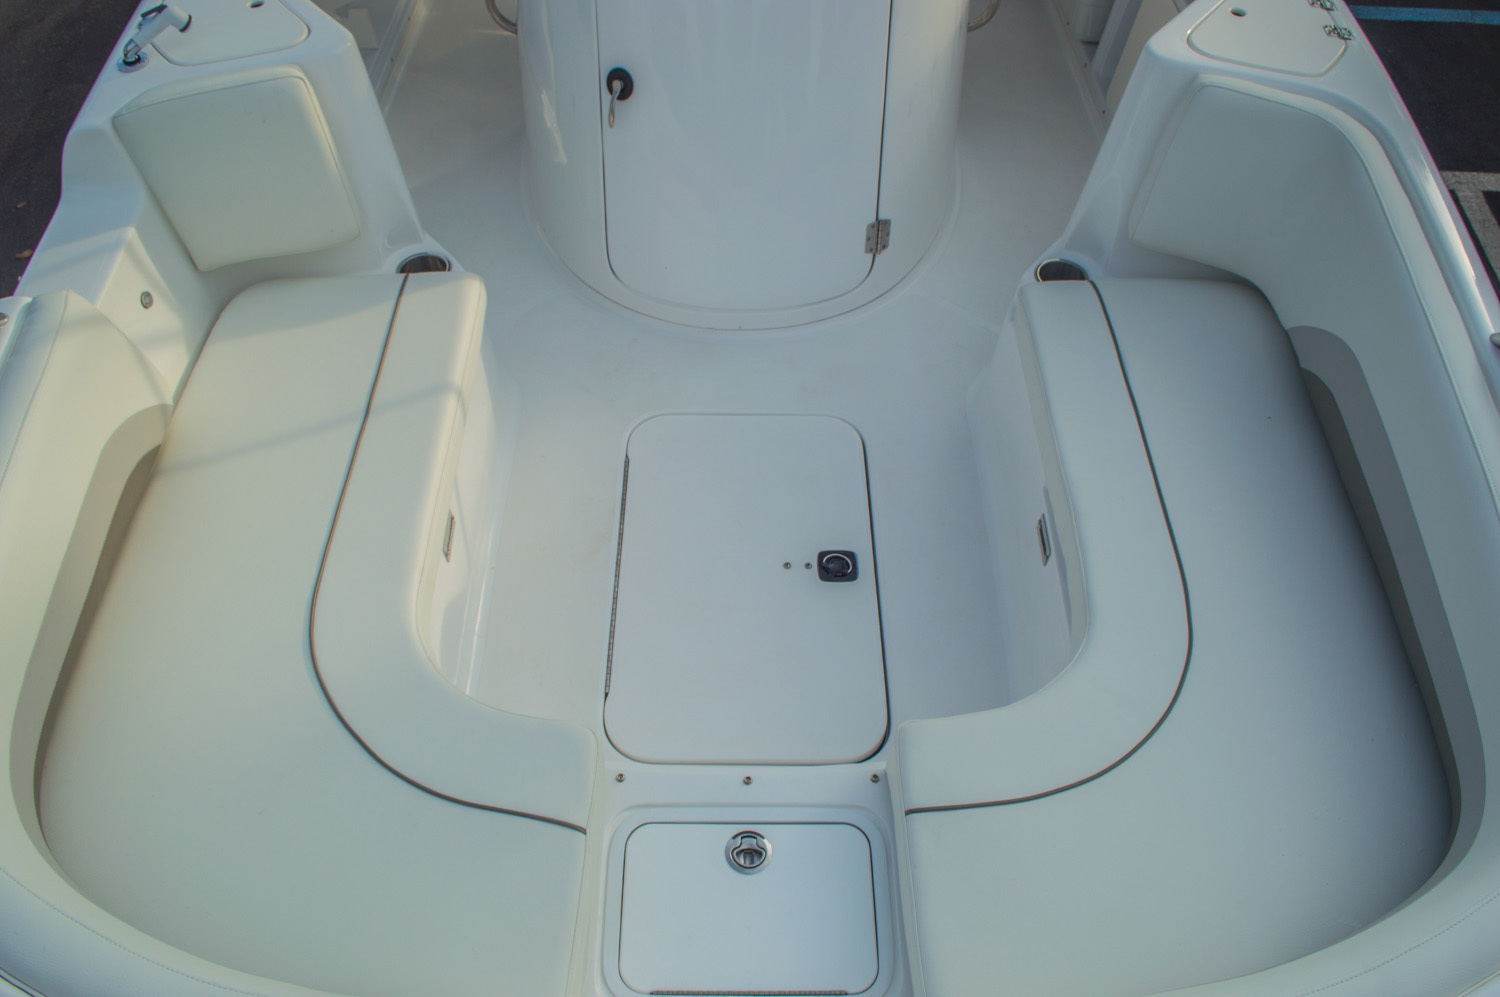 Thumbnail 52 for New 2016 Hurricane CC211 Center Consle boat for sale in West Palm Beach, FL